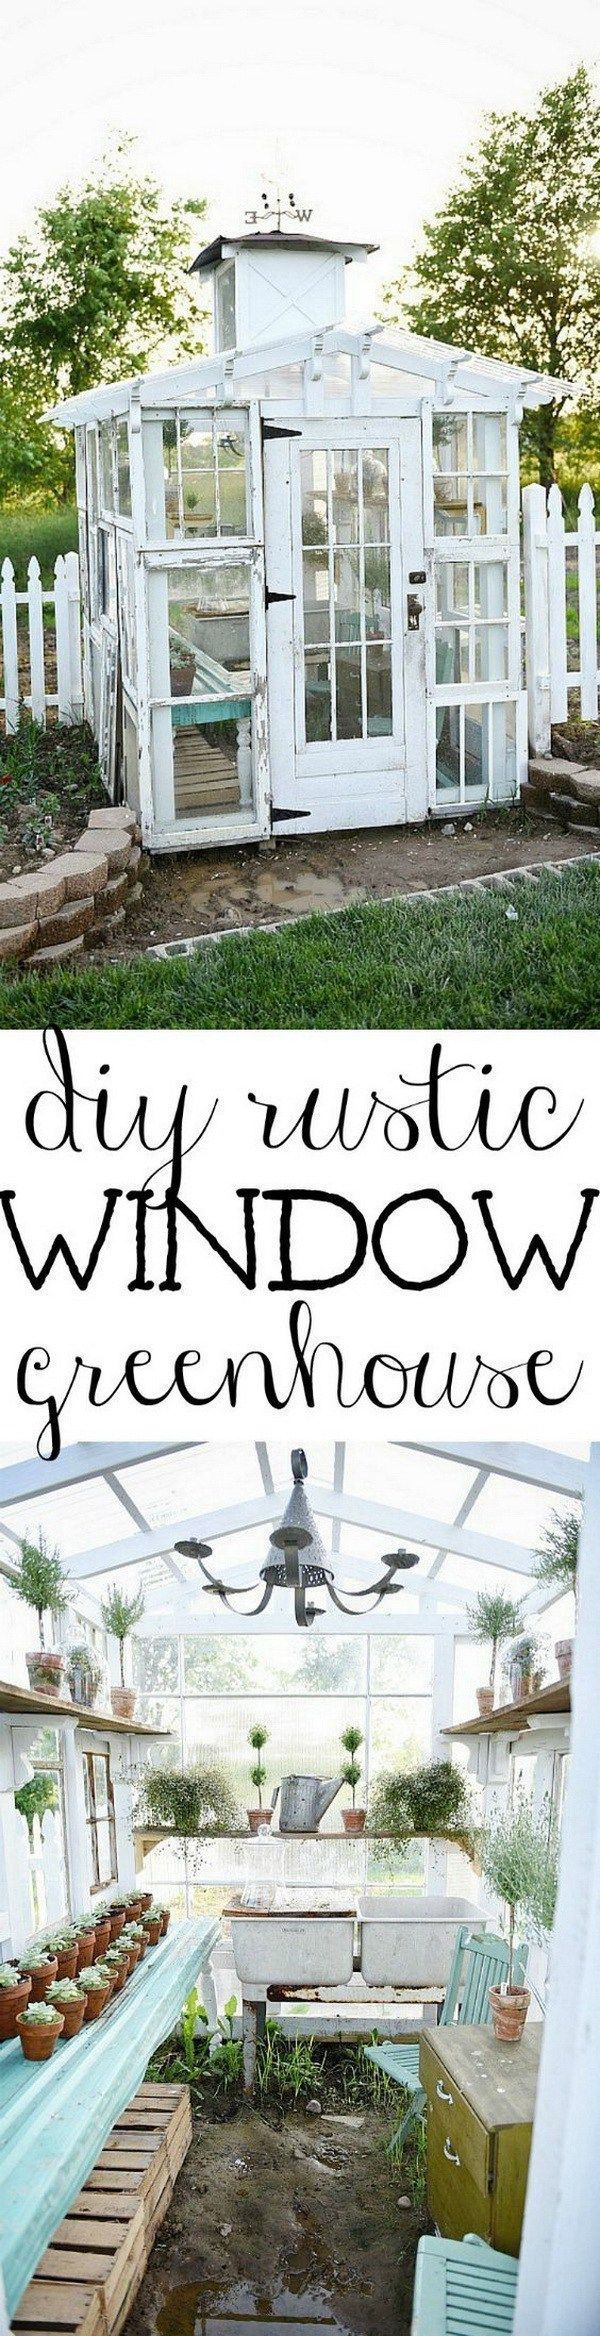 16 Awesome DIY Greenhouse Projects with Tutorials   Window ...